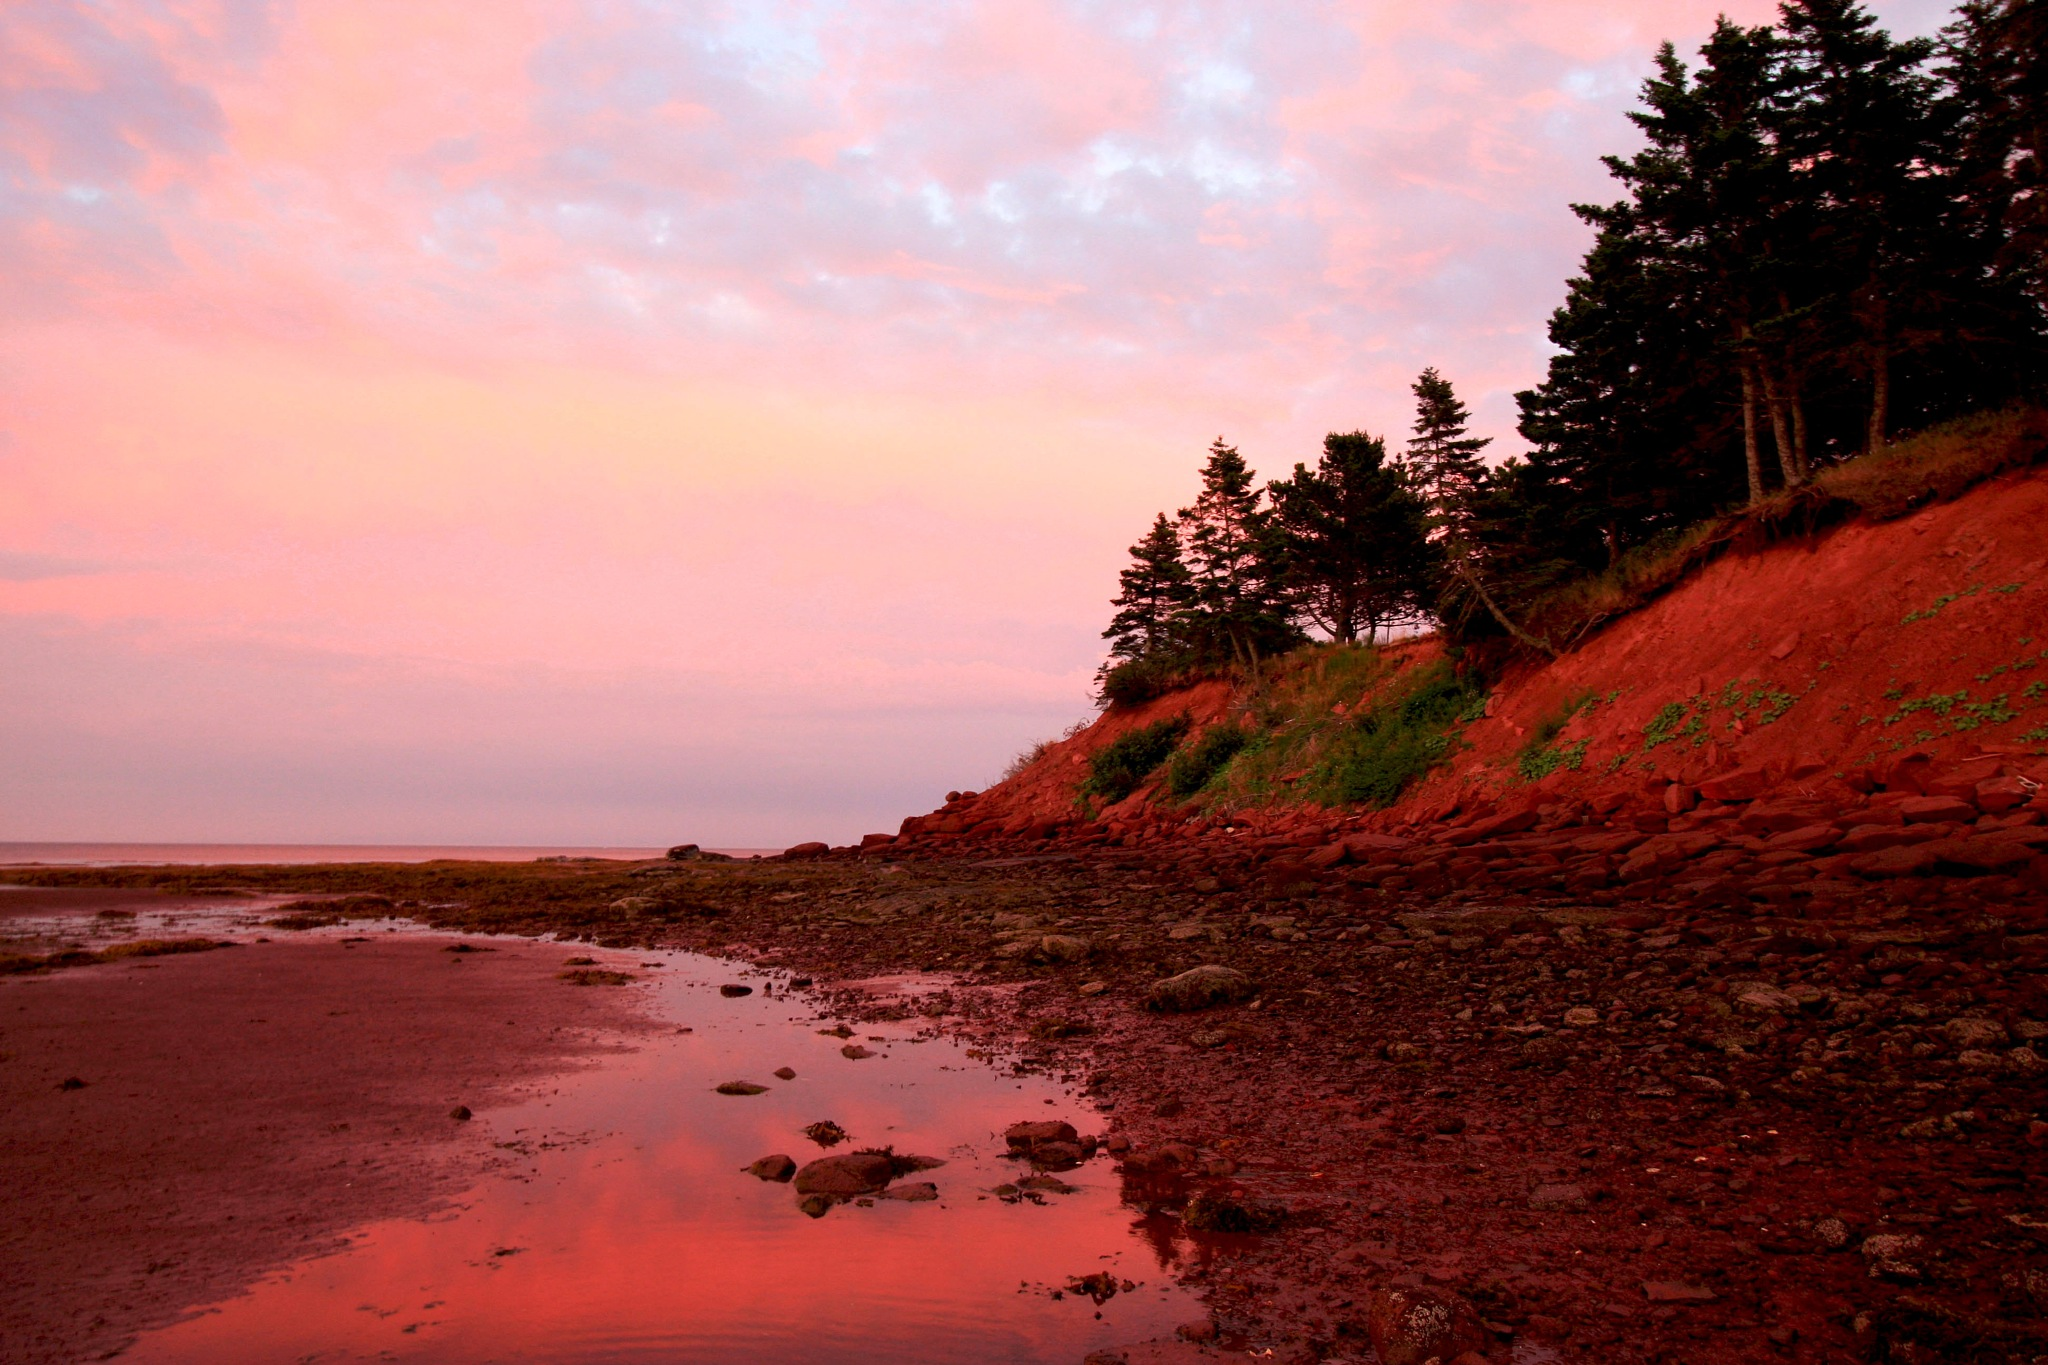 Red Sand Beach Cliffs at Sunset by Wendy Farrington